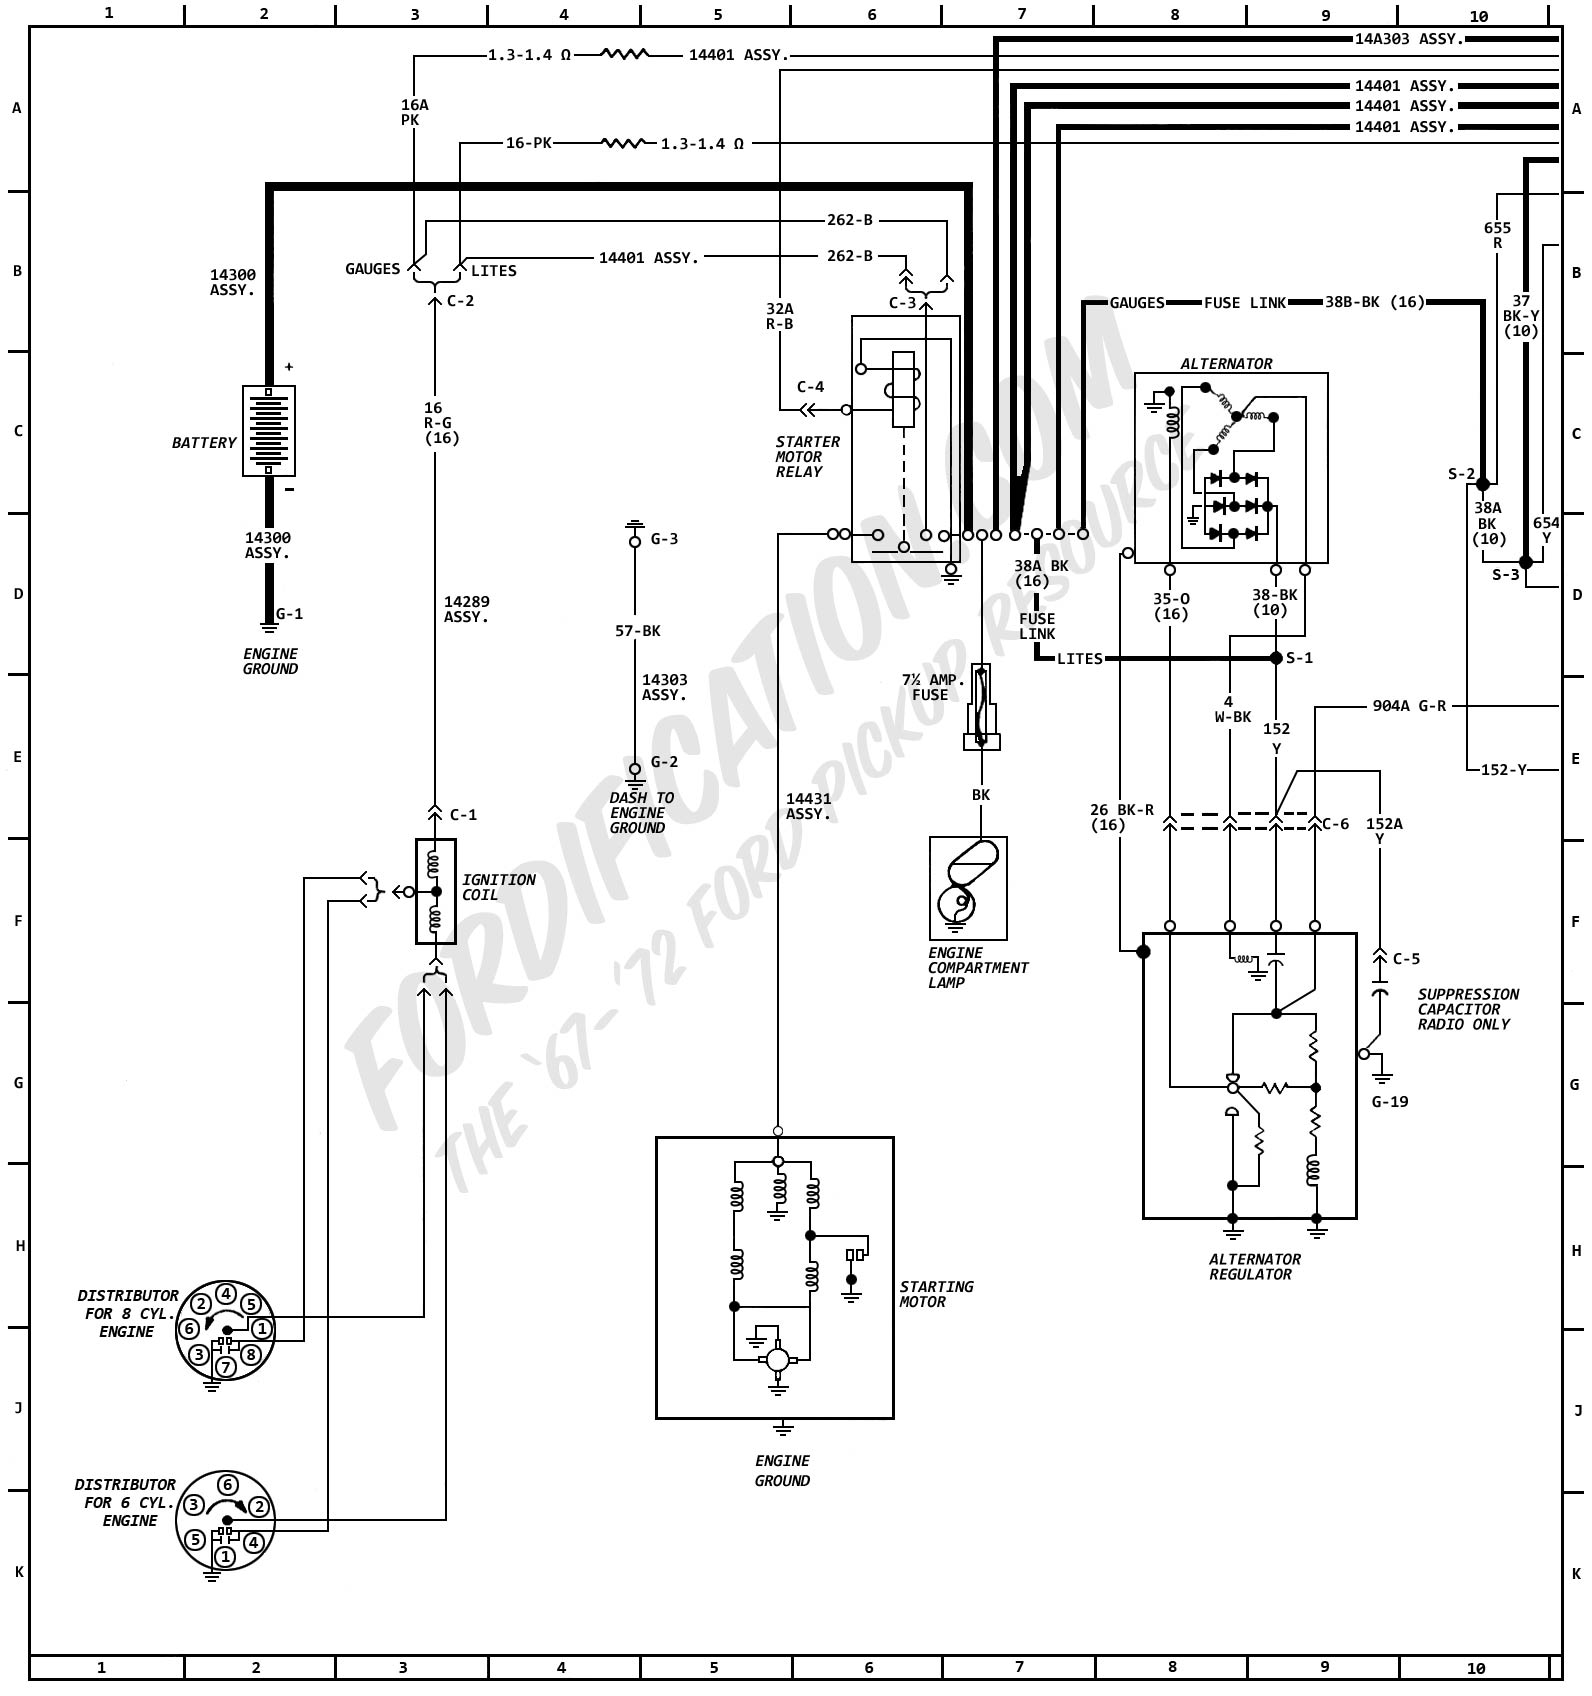 1972MasterWiring_01 1972 ford truck wiring diagrams fordification com ford ignition wiring diagram at honlapkeszites.co